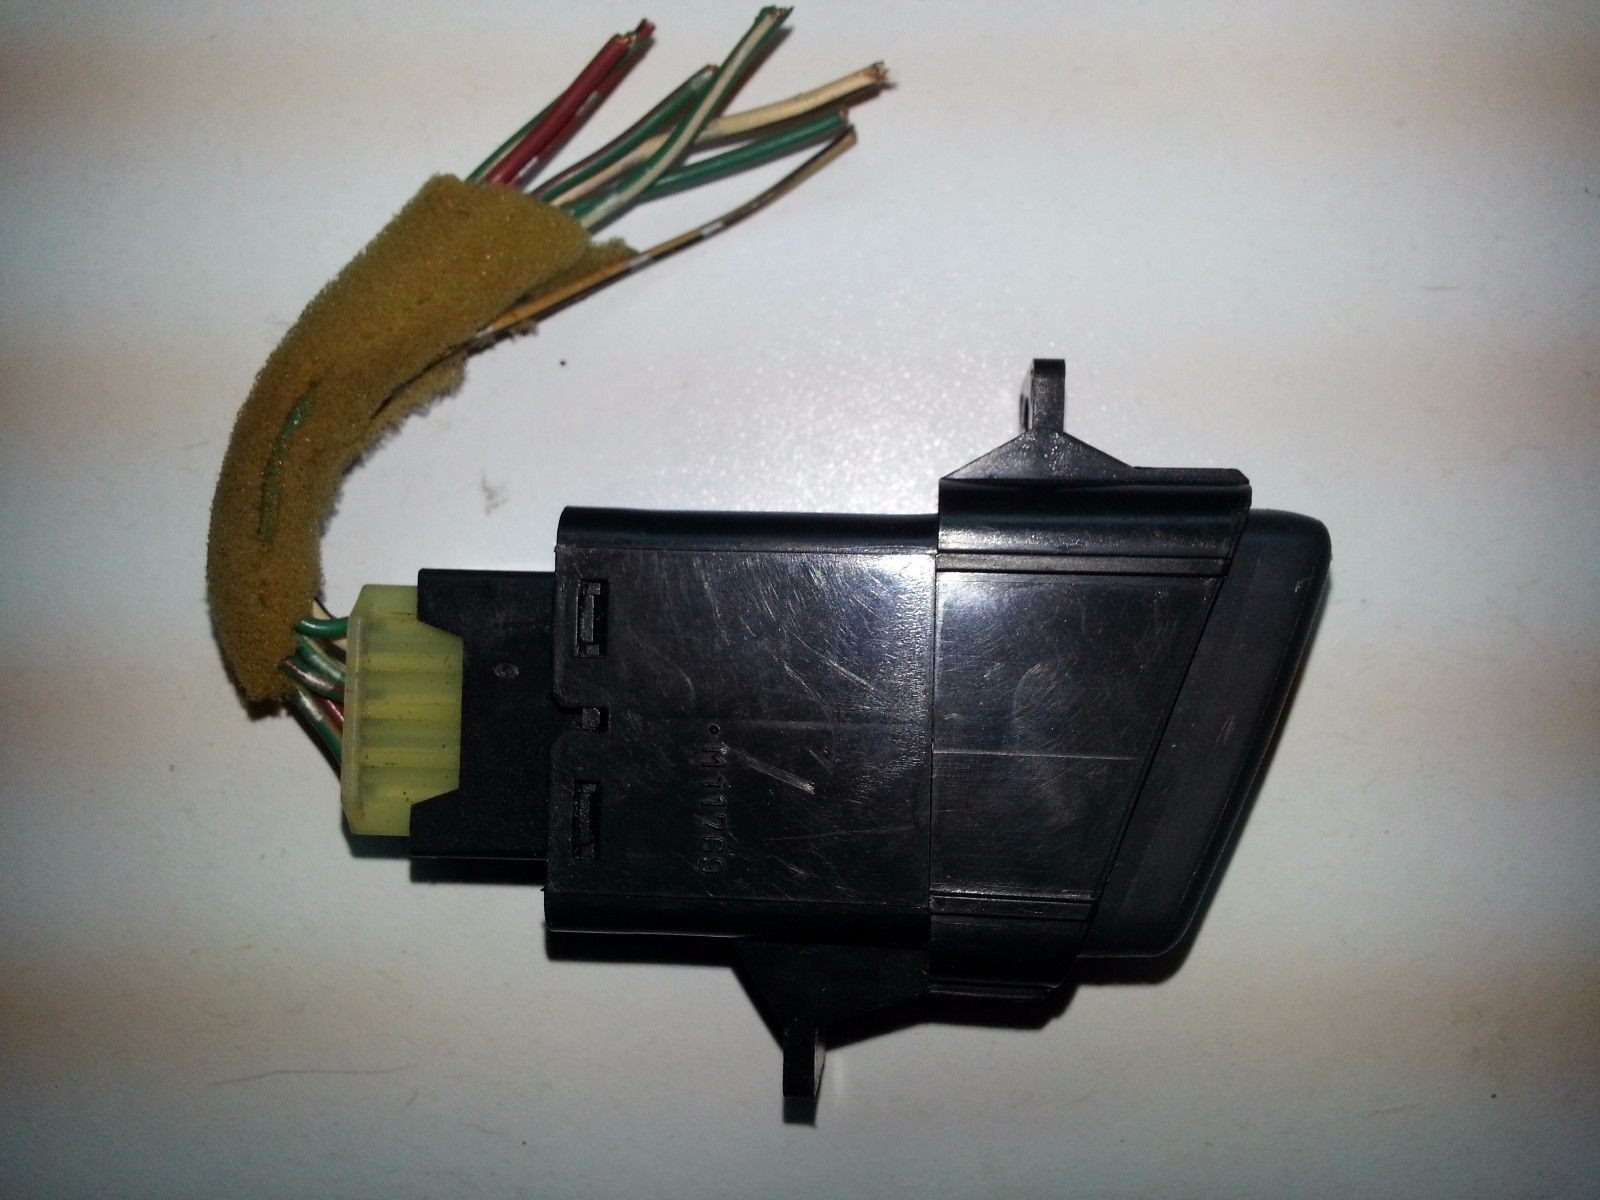 1997 1998 1999 2000 2001 HONDA CR-V HAZARD FLASHER LAMP SWITCH M11769 OEM  M11769